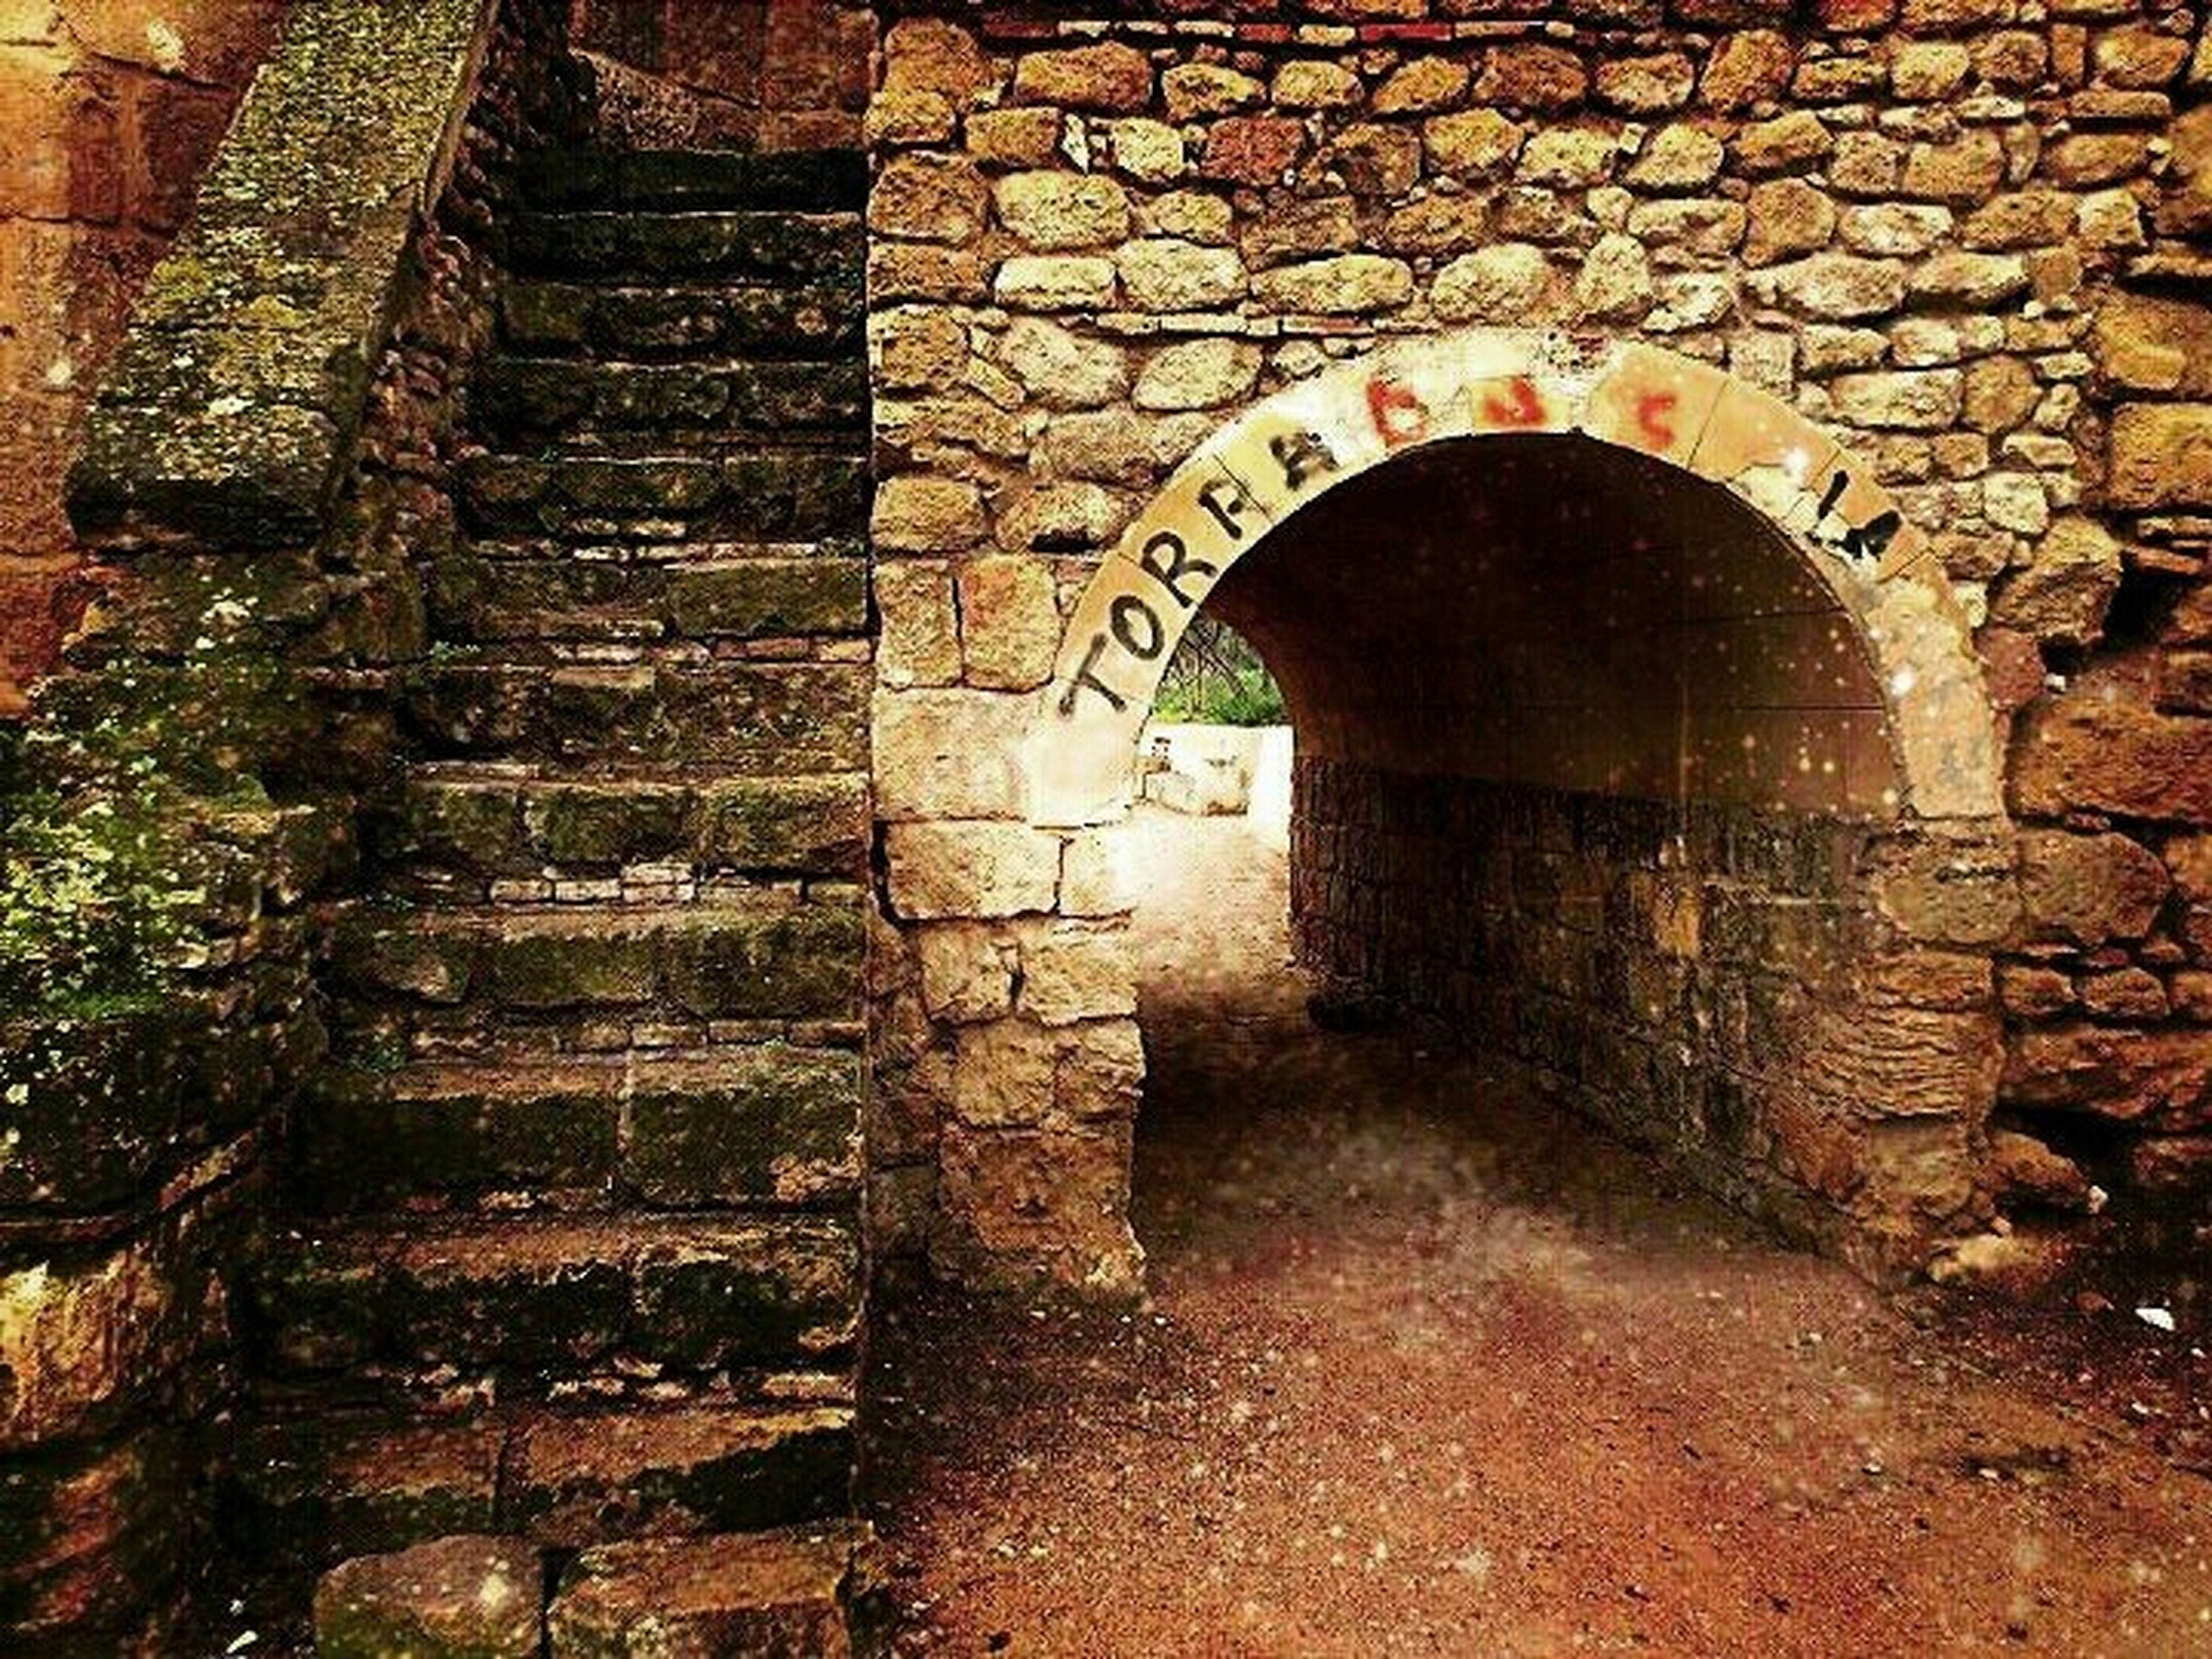 architecture, built structure, brick wall, building exterior, stone wall, arch, old, wall - building feature, wall, abandoned, weathered, entrance, day, outdoors, no people, brick, house, history, door, cobblestone